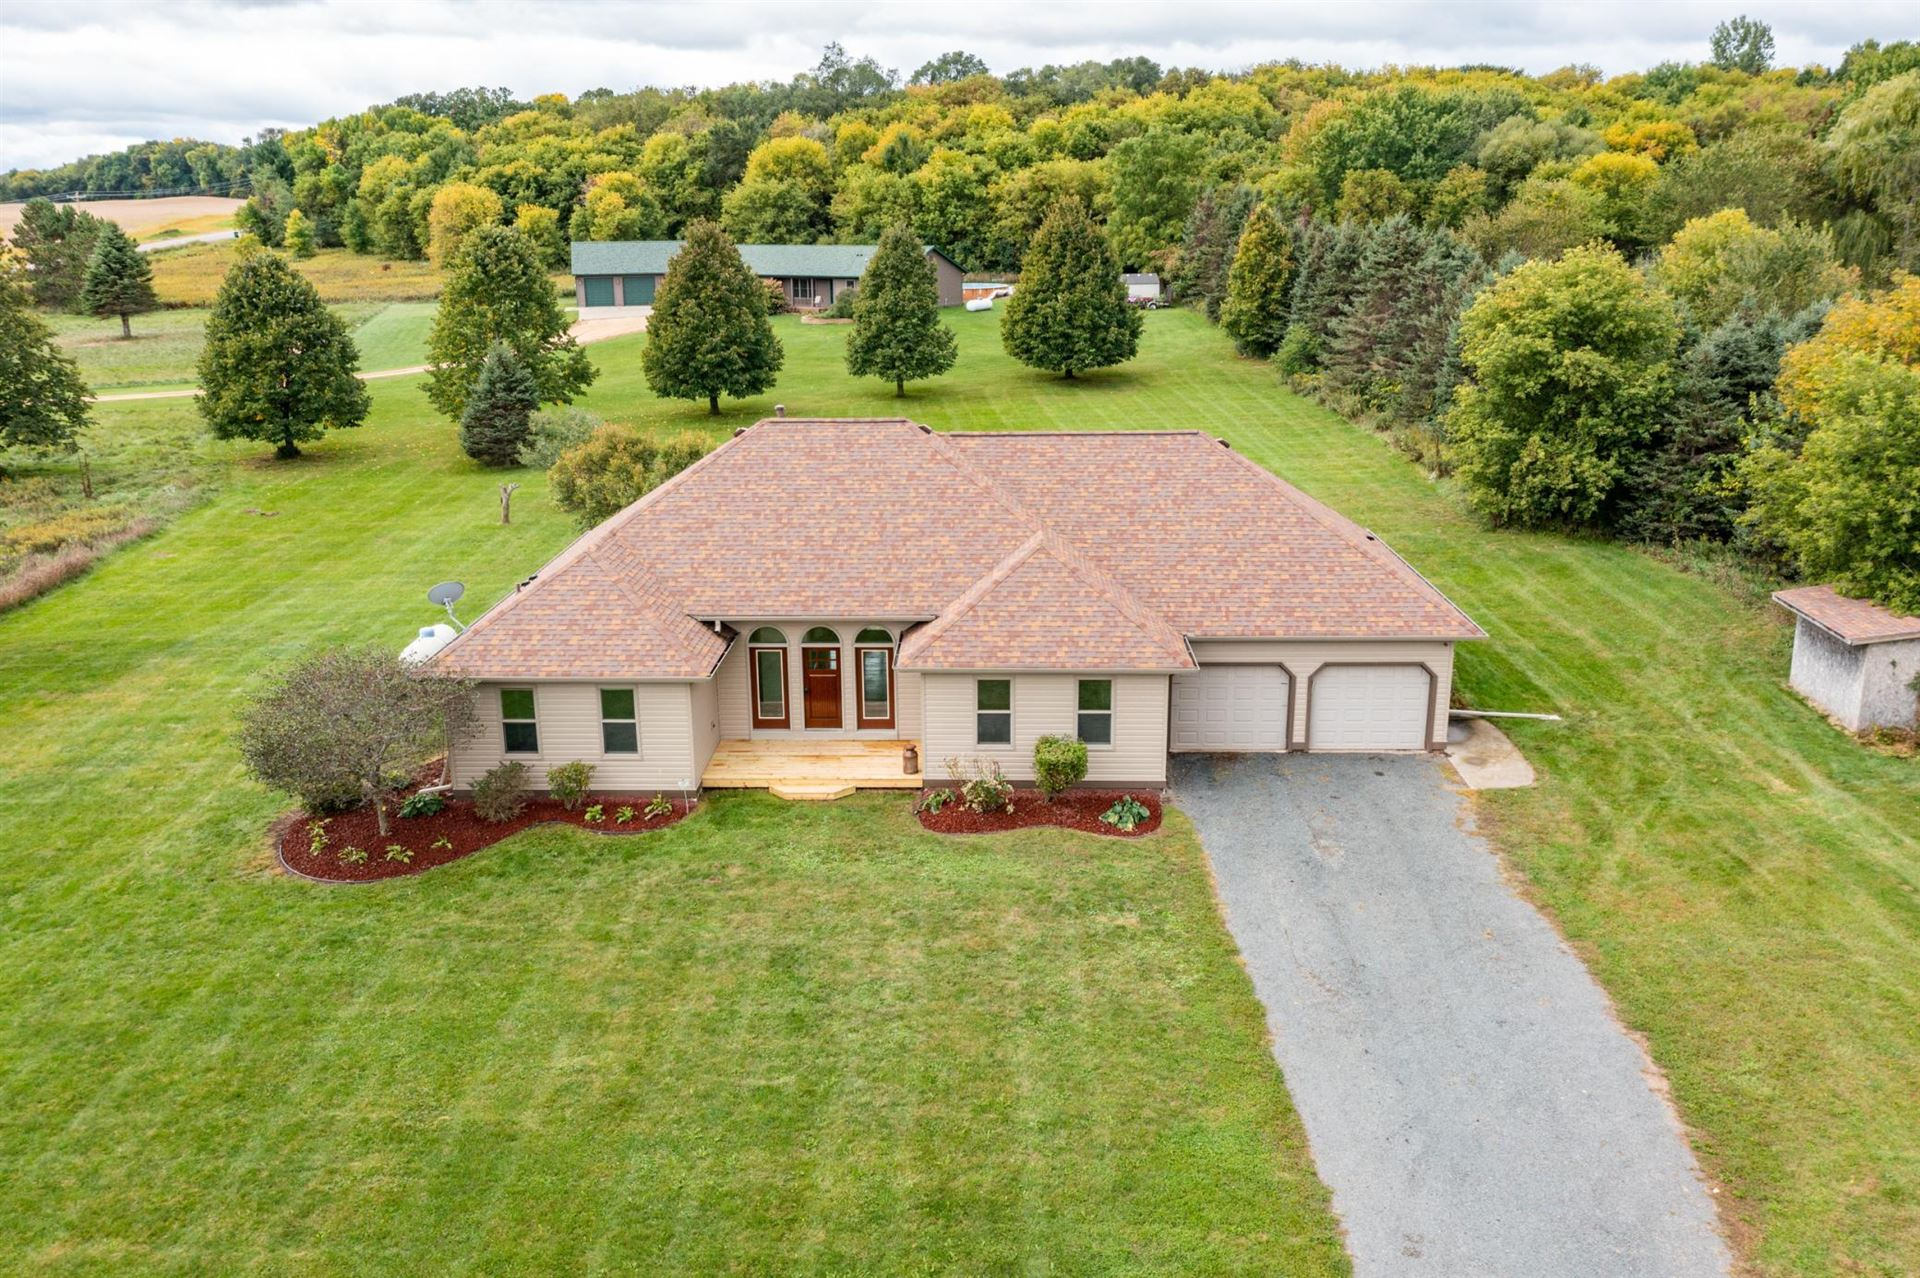 Photo of 133 206th Street, Alden Township, WI 54026 (MLS # 6103687)